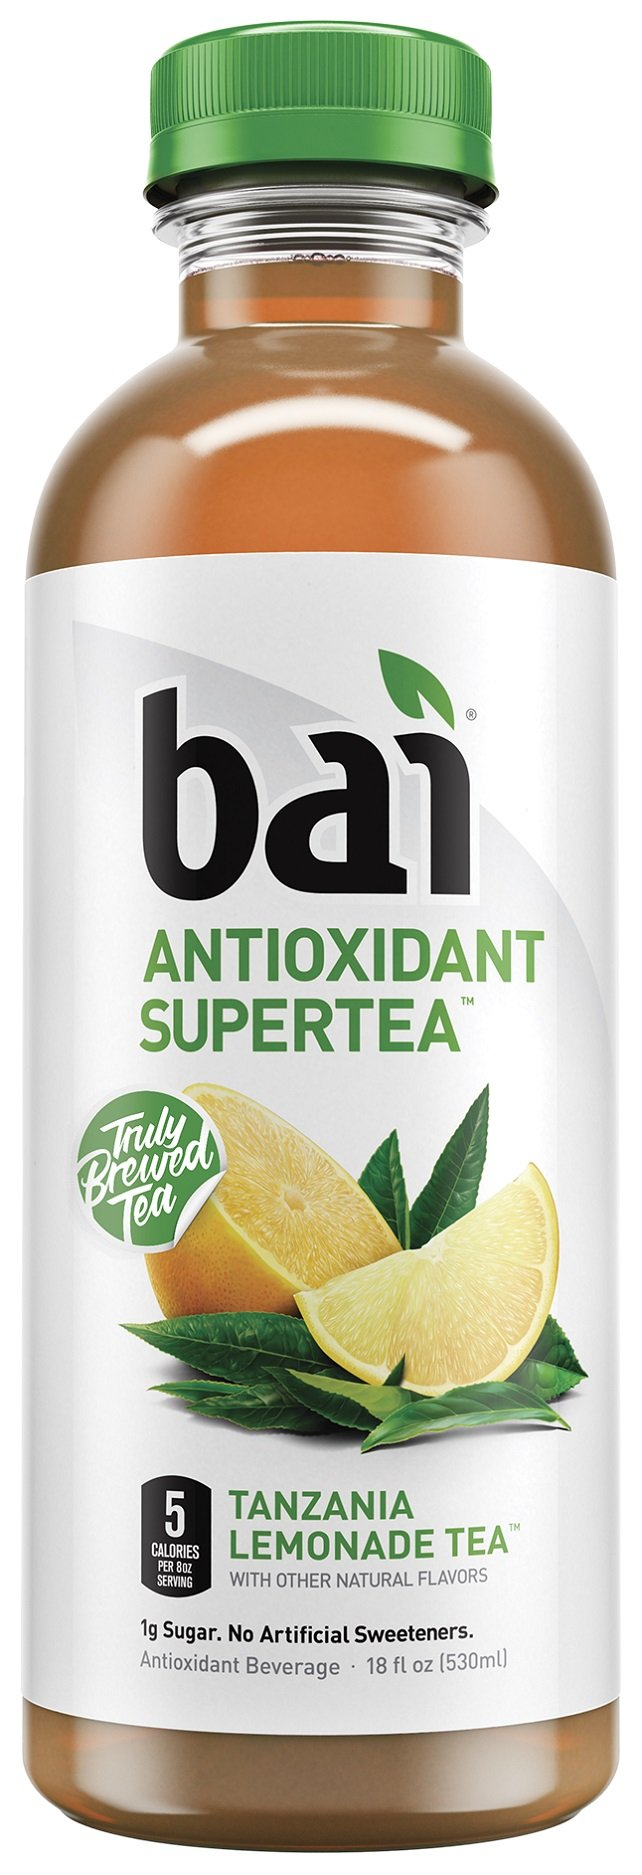 Bai Tanzania Lemonade Tea, Antioxidant Infused Supertea, 18 Fluid Ounce Bottles, 12 count